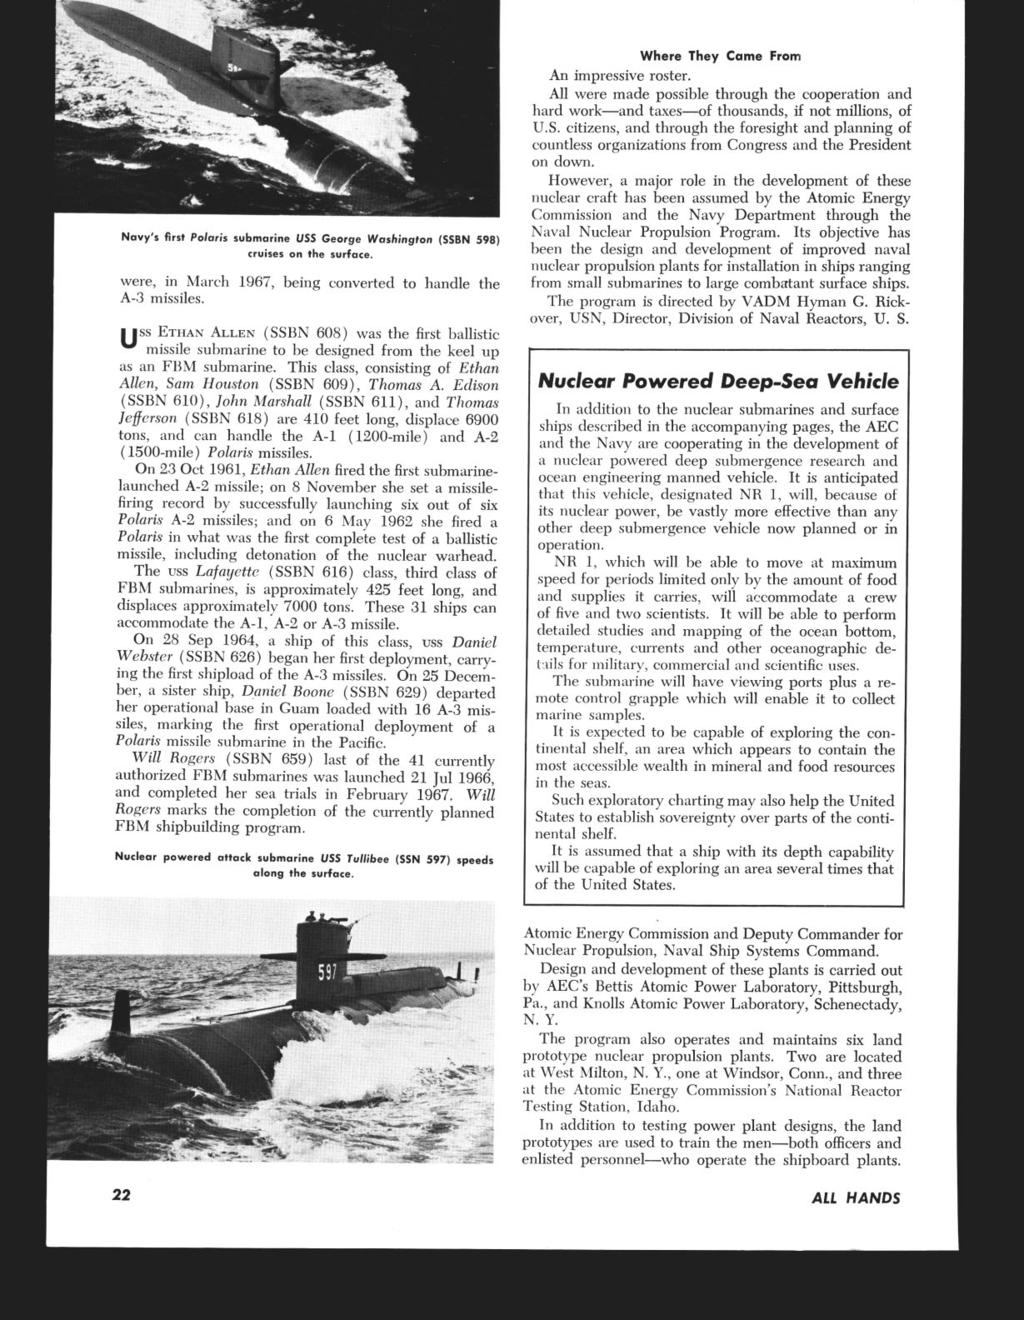 All WINDS* THE BUREAU OF NAVAL PERSONNEL CAREER PUBLICATION